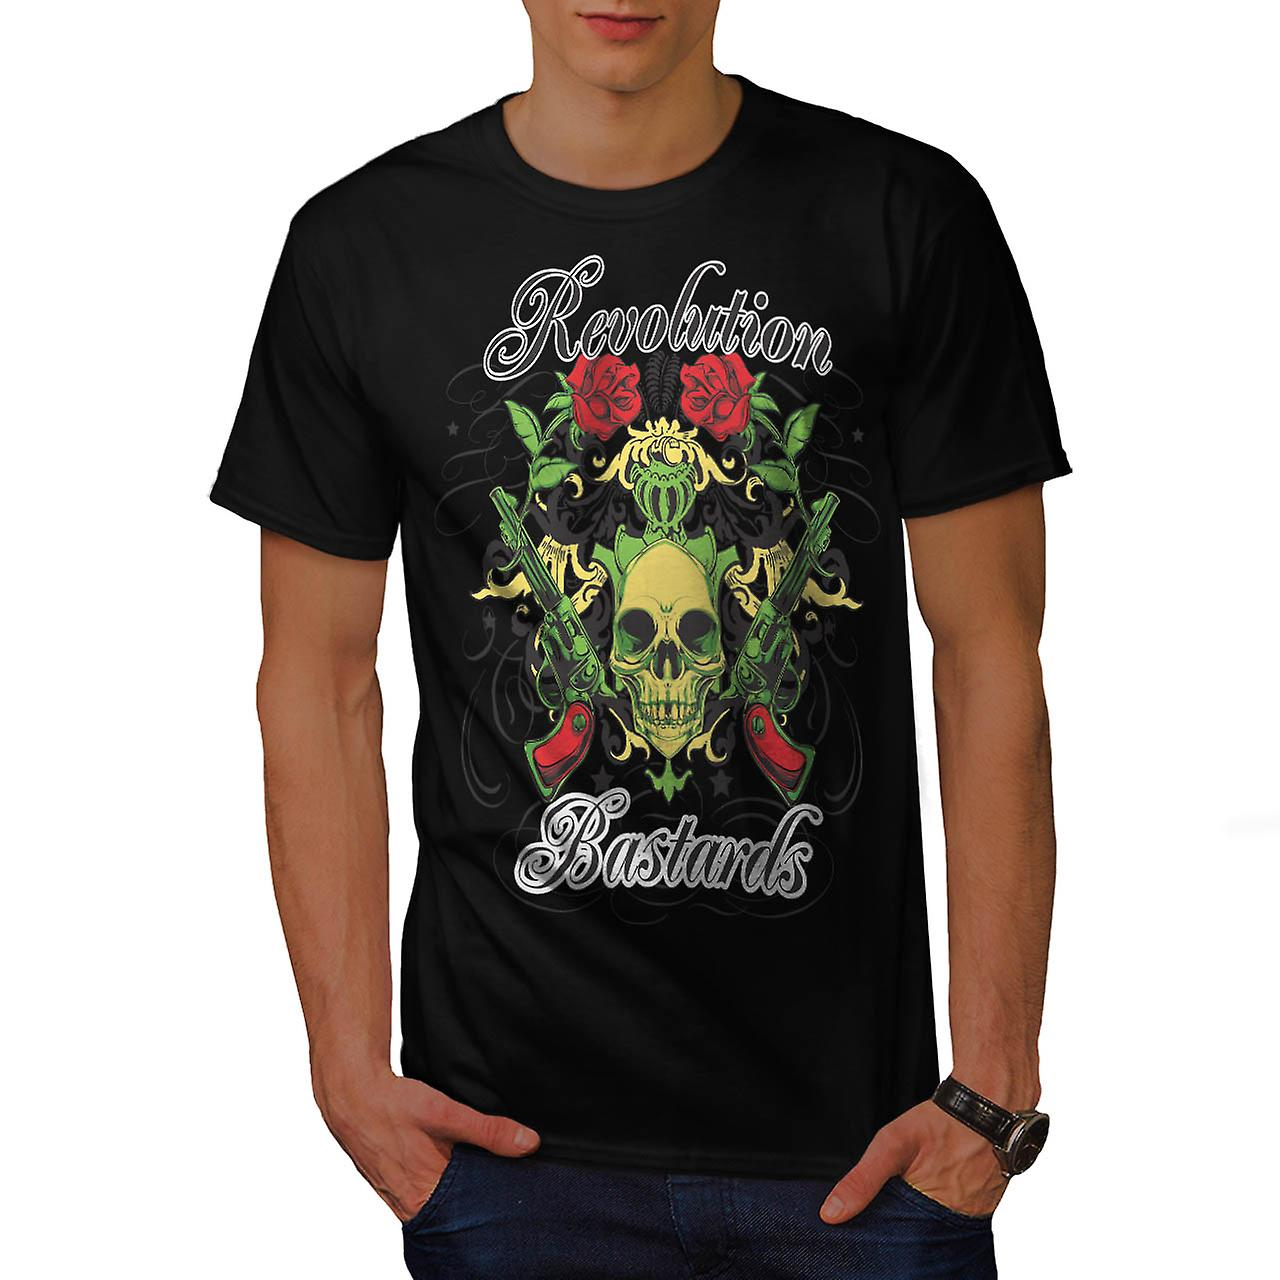 Revolution Bastards Roses Guns Men Black T-shirt | Wellcoda